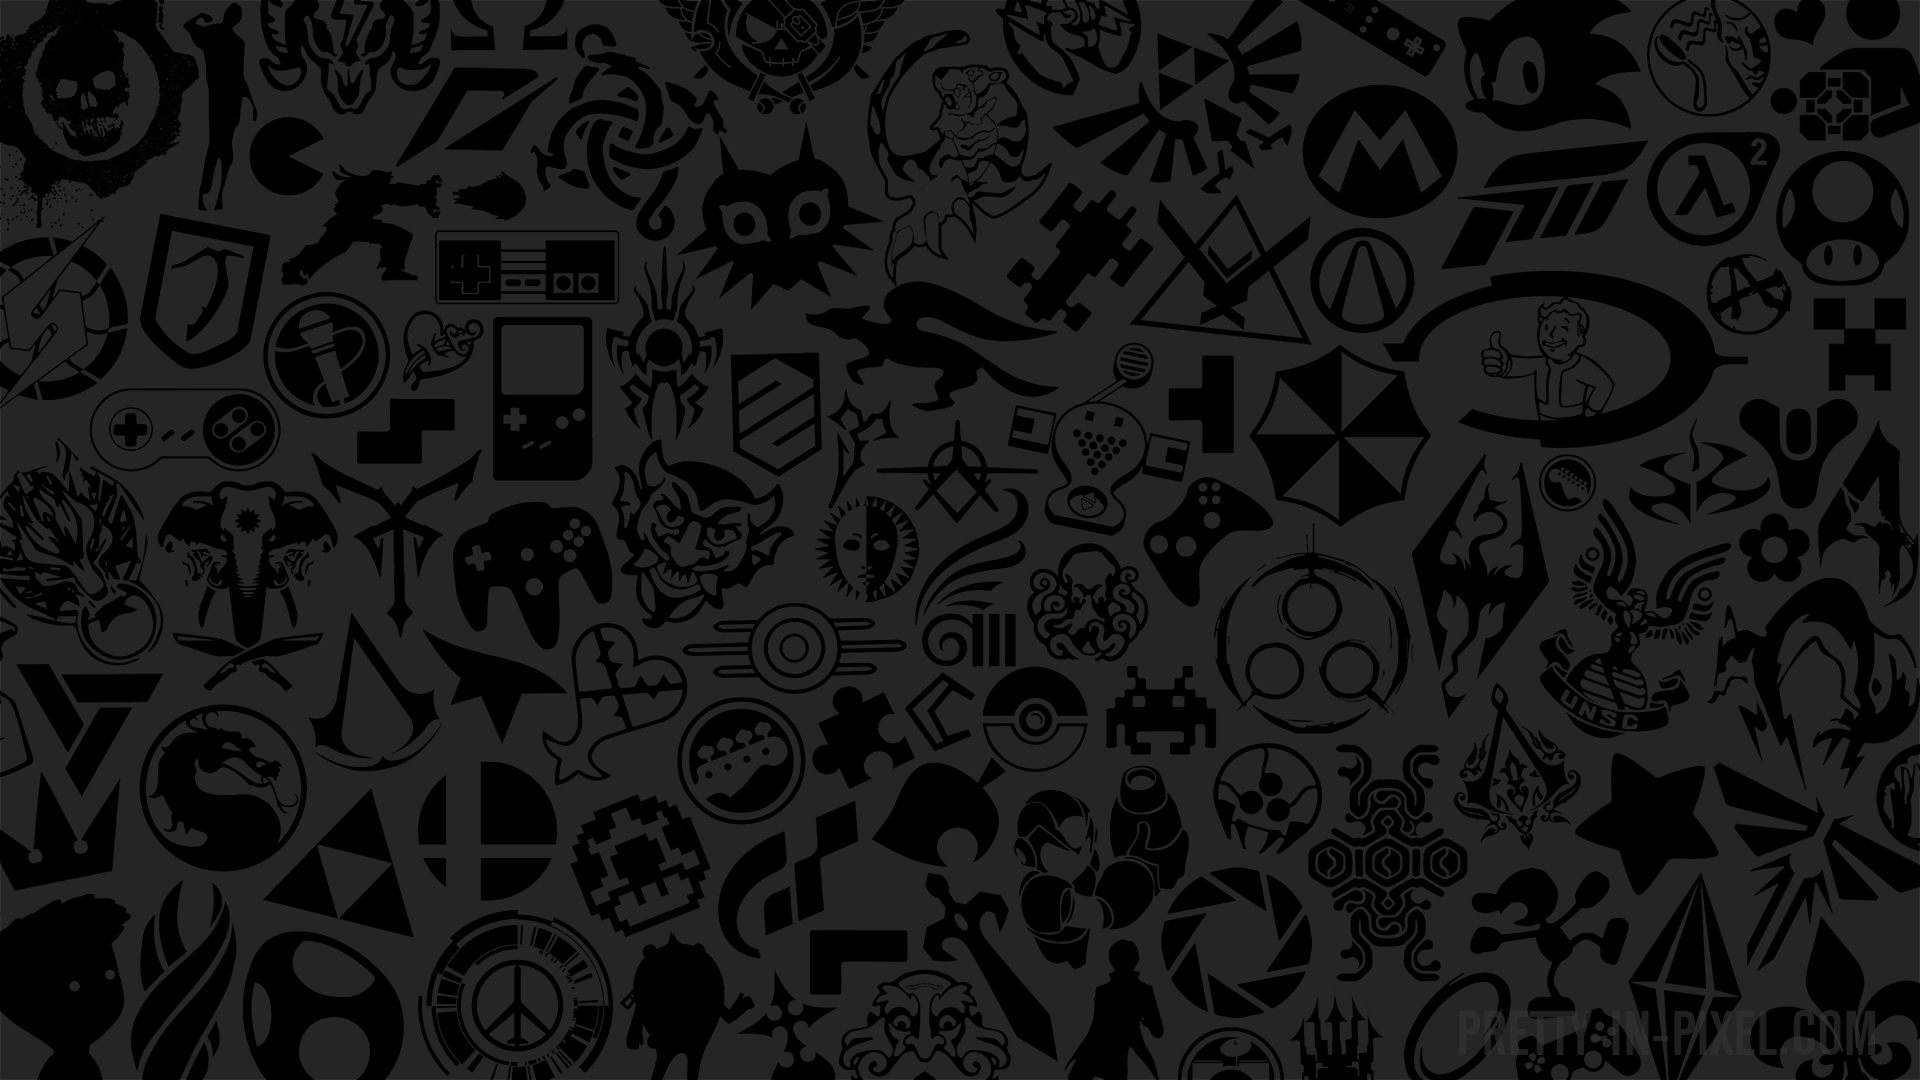 Adorable Gamer Wallpapers (49 Wallpapers - SHunVMall PC Wallpapers)